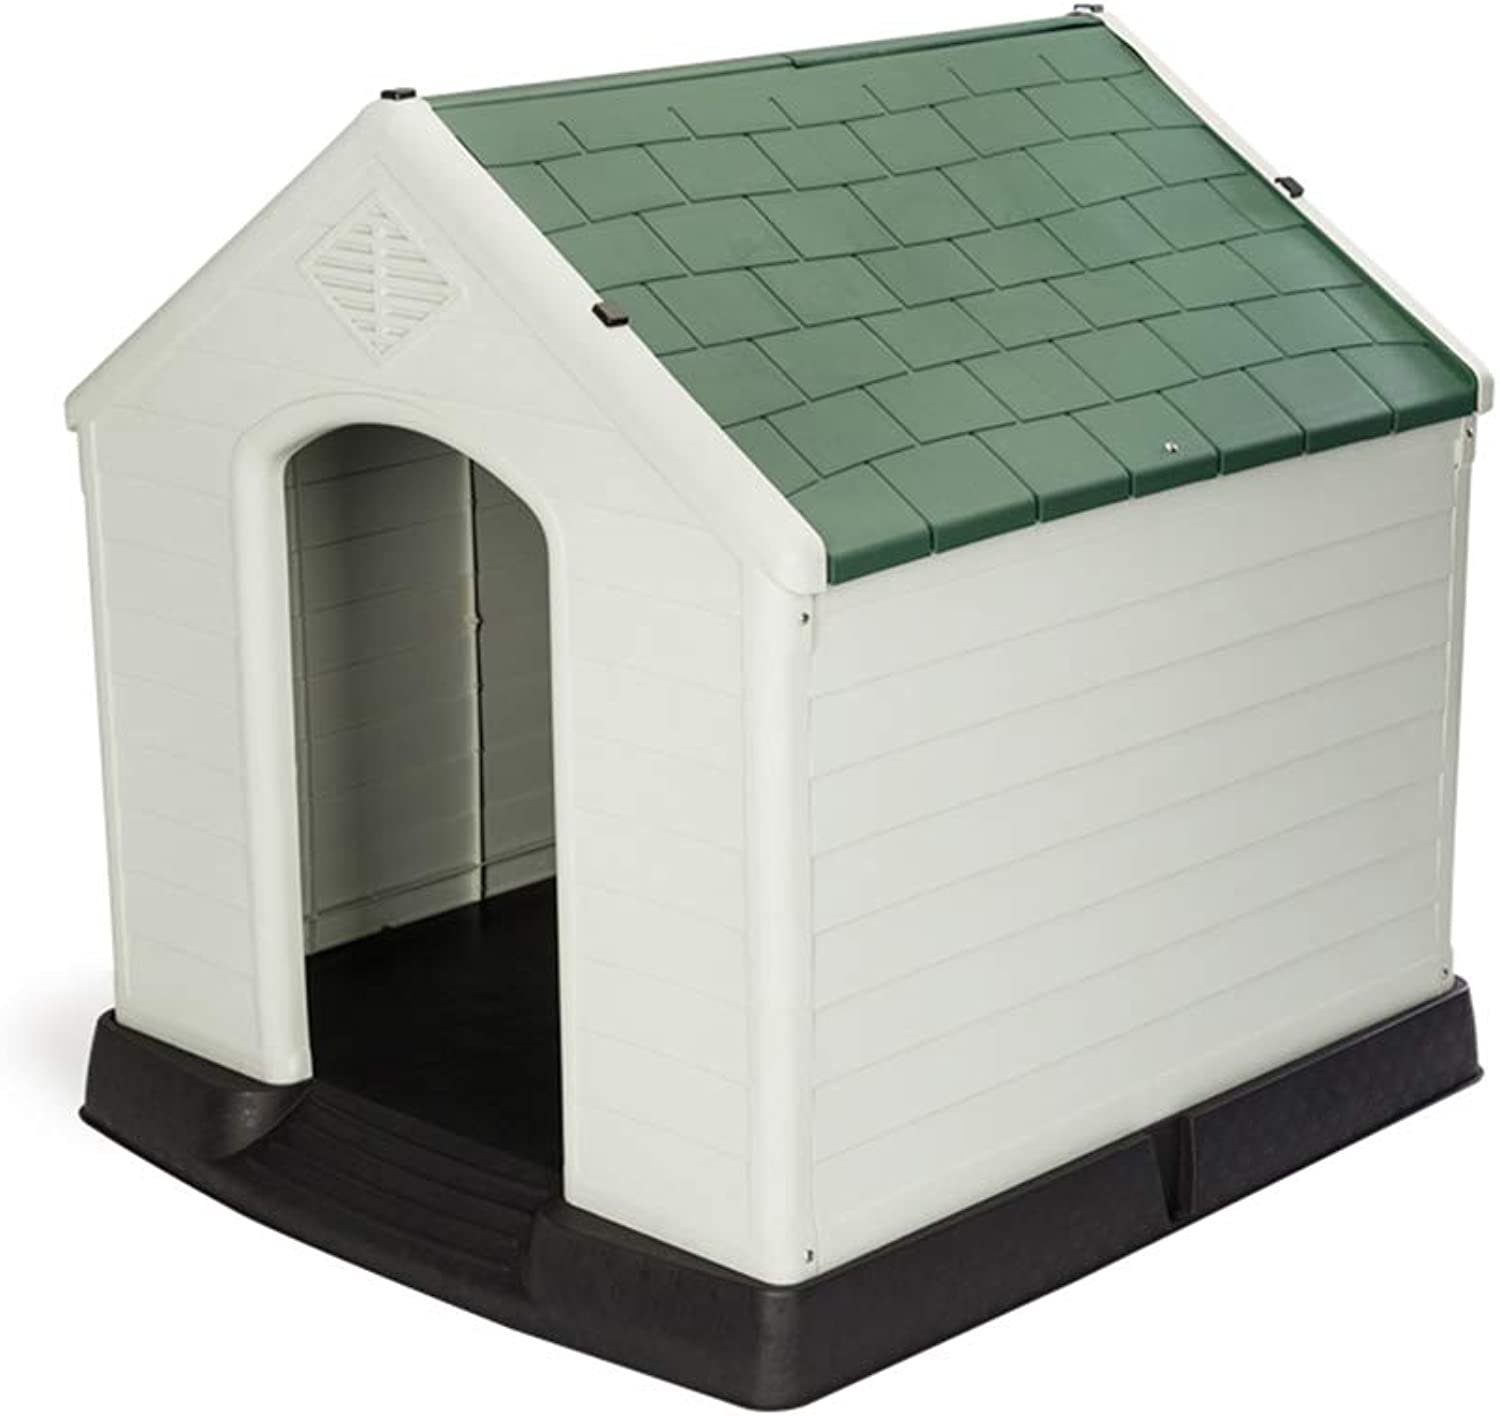 Pet Kennel Plastic Large Dog Bed House Washable Dog House, Single Door Dog Playpen Crate Fence (color   GREEN)